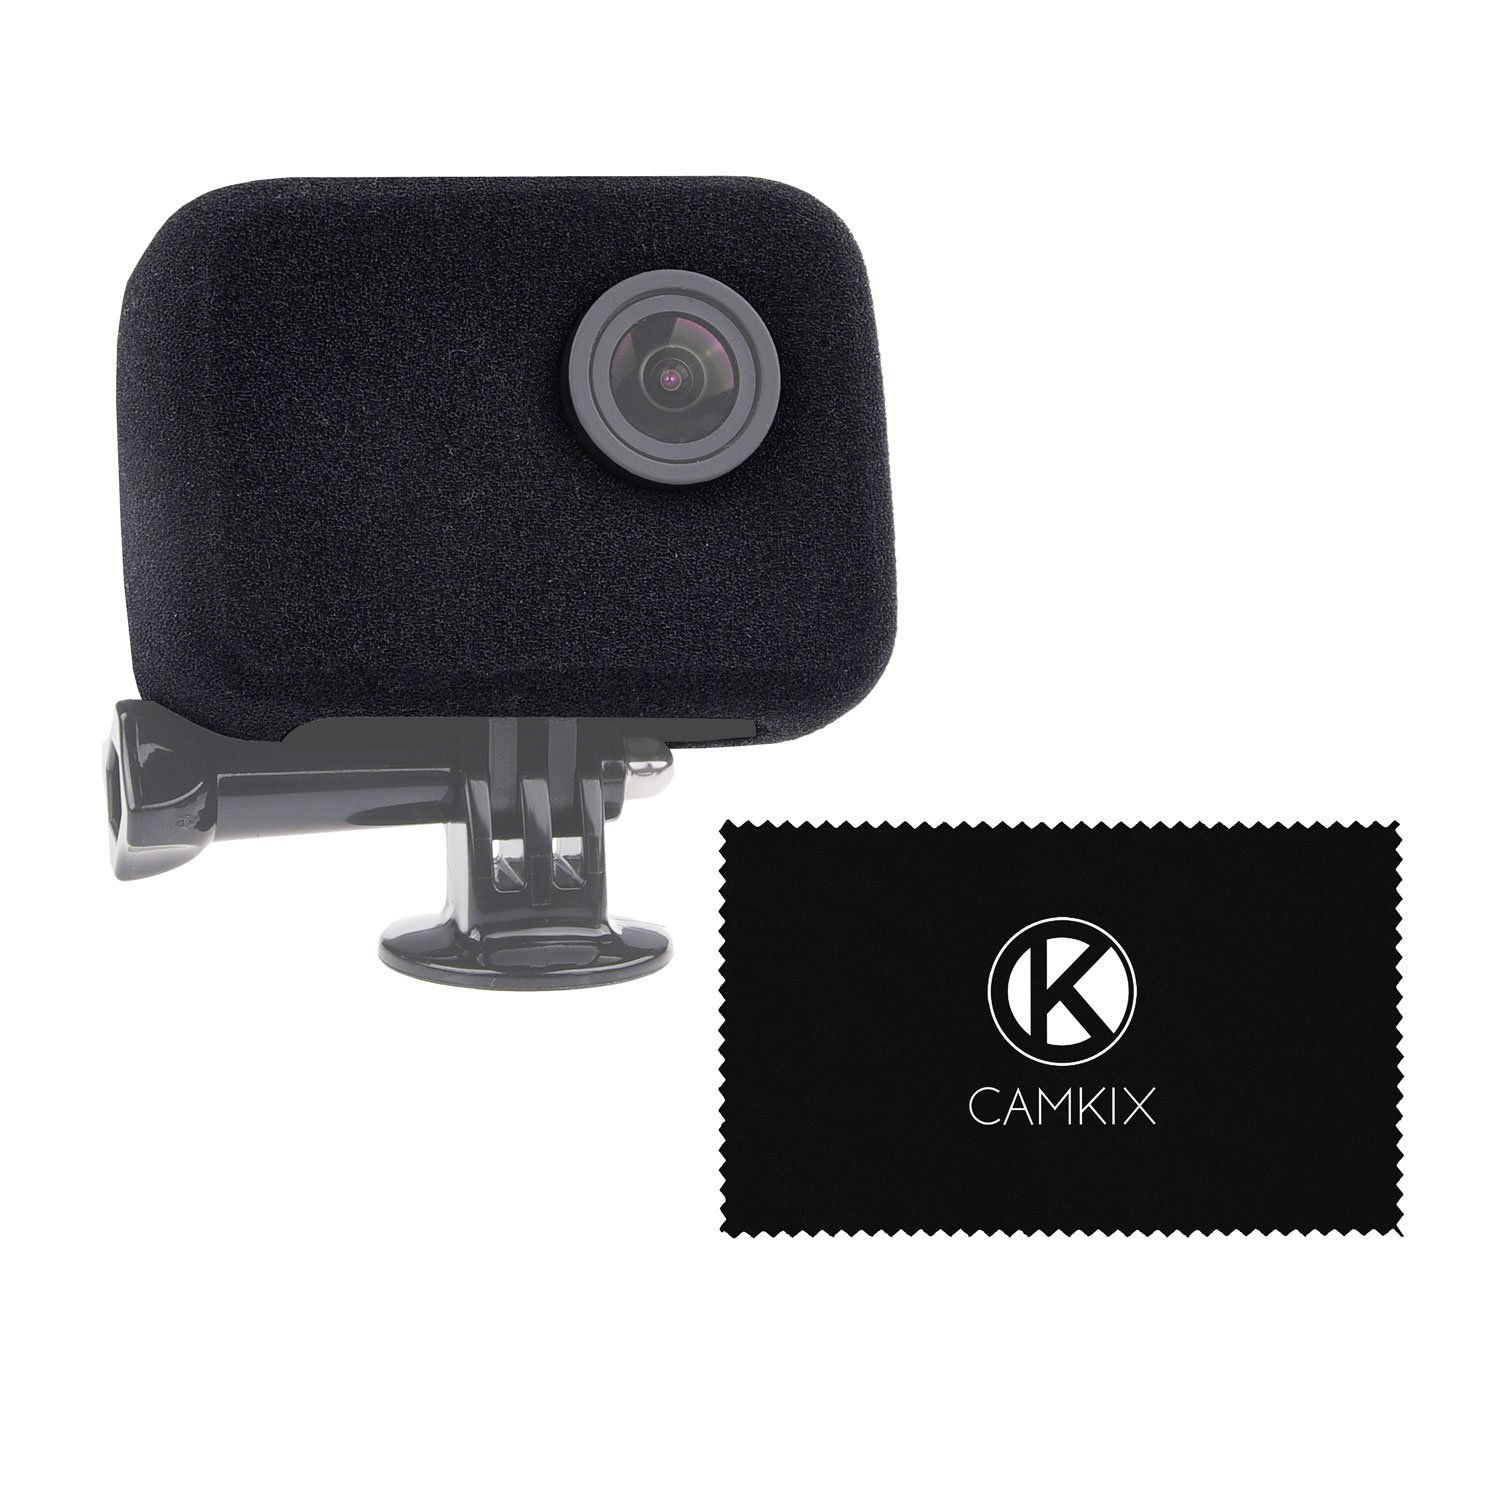 CamKix Windscreen replacement for GoPro Camera (Frame Mount and UV filter not included) - Reduces Wind Noise for Optimal Audio Recording - For GoPro HERO4, HERO3+ and HERO3 - Cleaning Cloth D0061-WSF-BLA